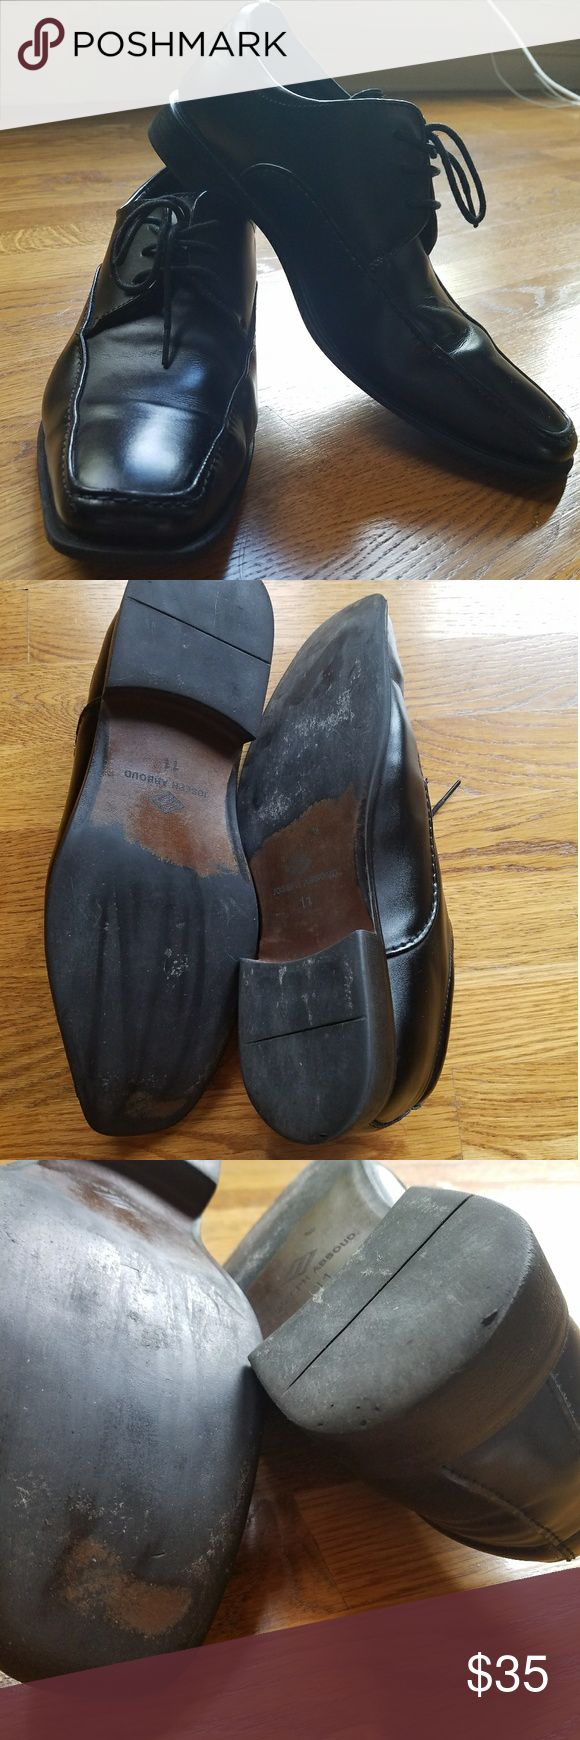 Joseph Abboud mens 11 GUC In good used condition, these black leather Joseph Abboud shoes have rubber soles and padded insoles. I did a quick polish and I'm by no means a shoe polish expert so you could probably do better. Smoke-free home. No trades or transactions outside of Poshmark. Joseph Abboud Shoes Oxfords & Derbys